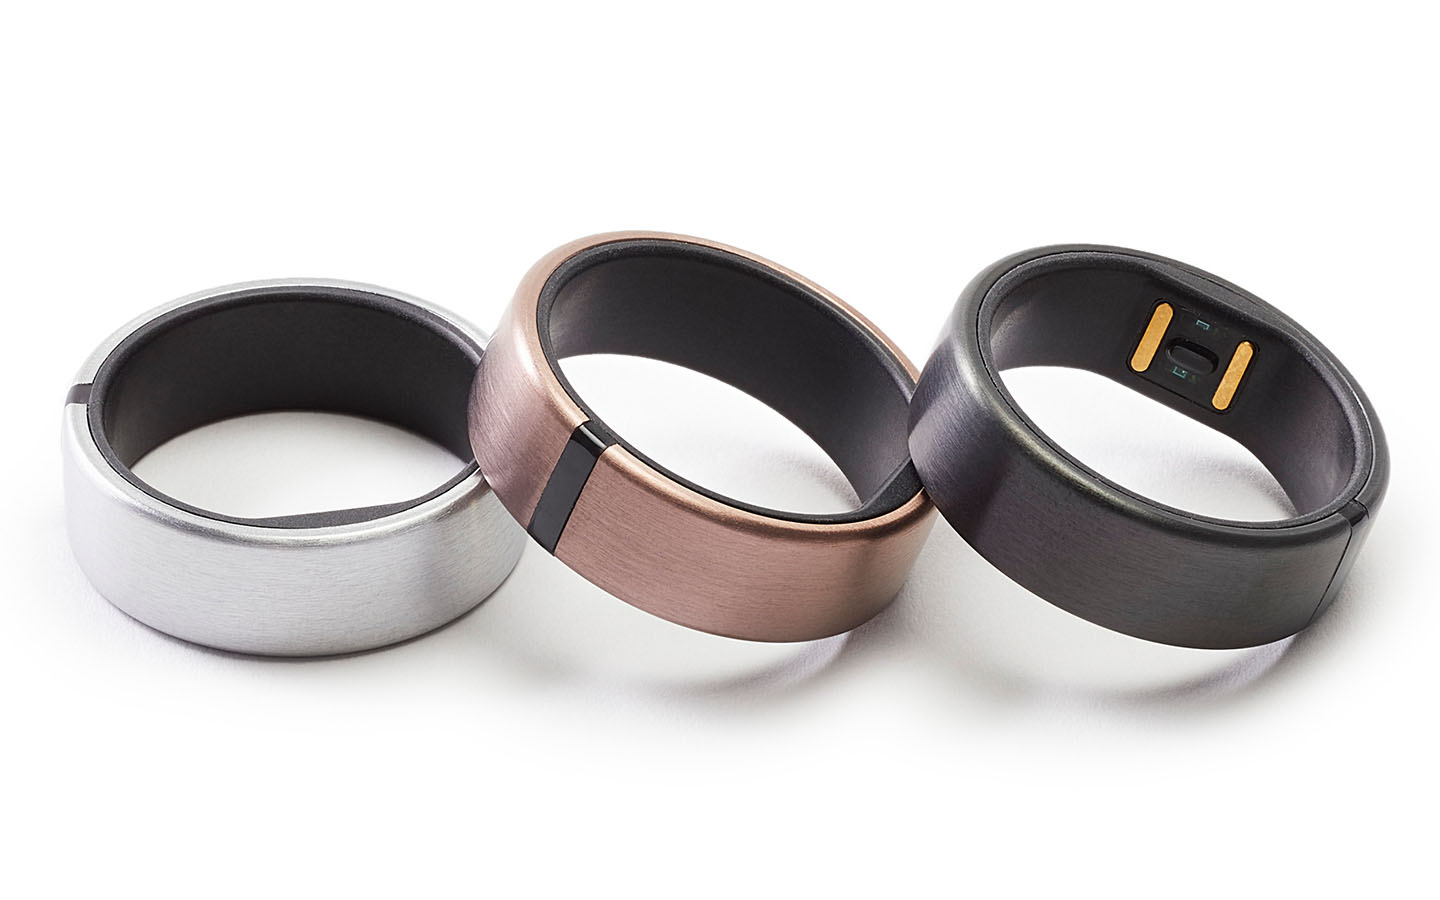 Motiv Ring product family